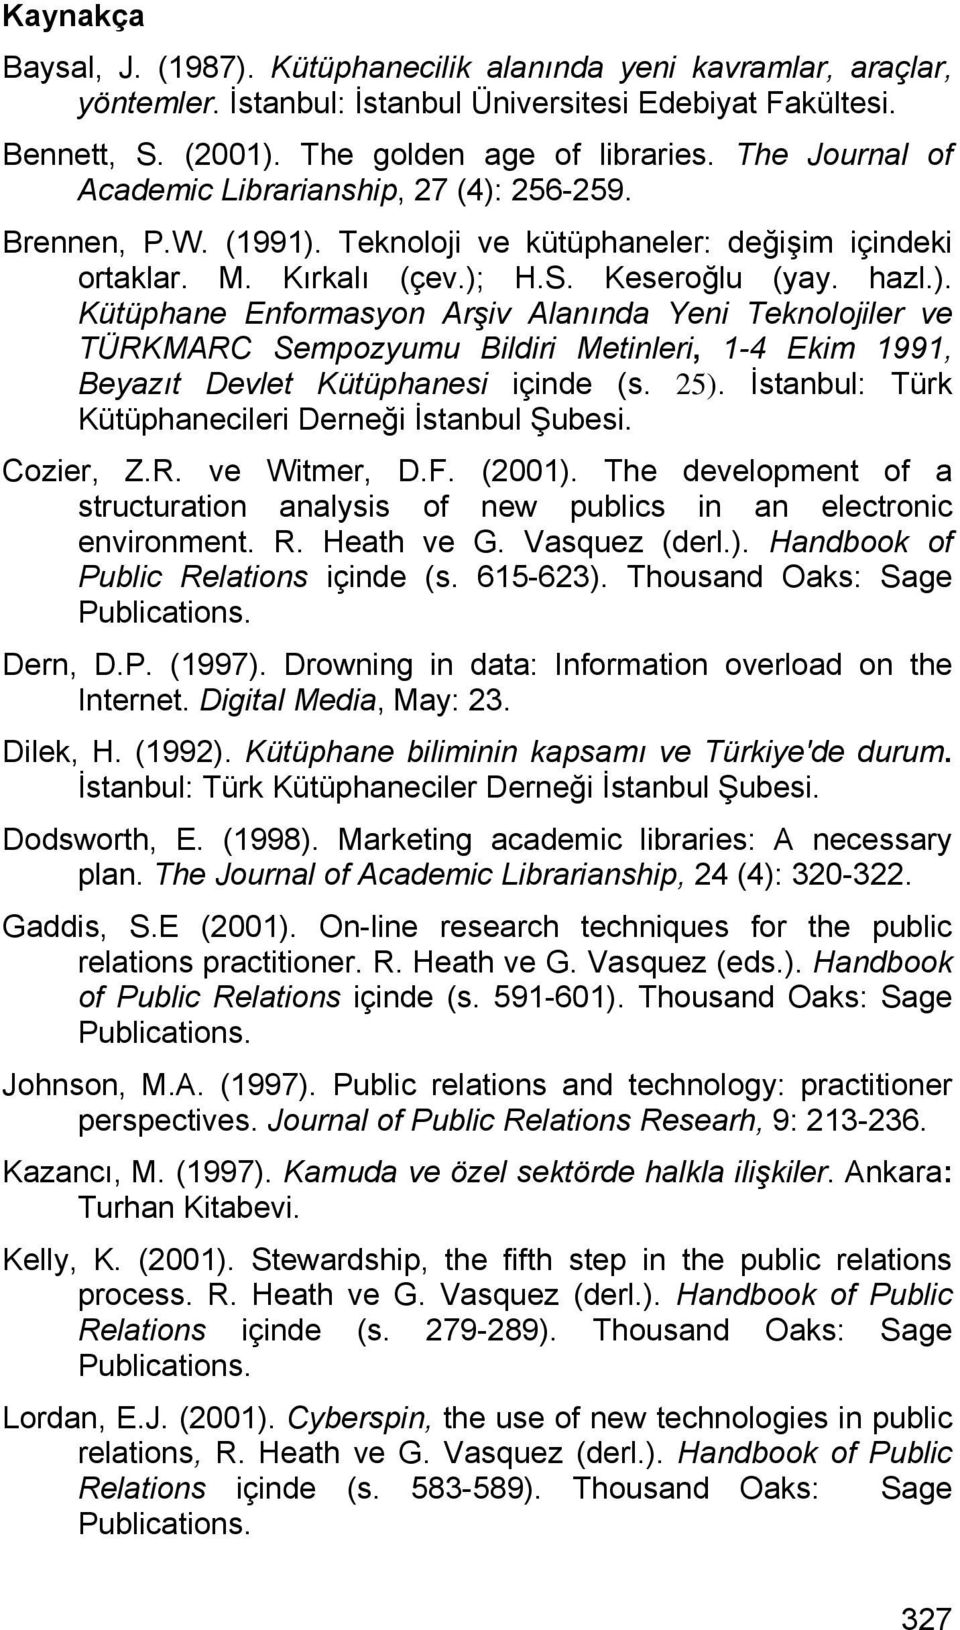 25). İstanbul: Türk Kütüphanecileri Derneği İstanbul Şubesi. Cozier, Z.R. ve Witmer, D.F. (2001). The development of a structuration analysis of new publics in an electronic environment. R.